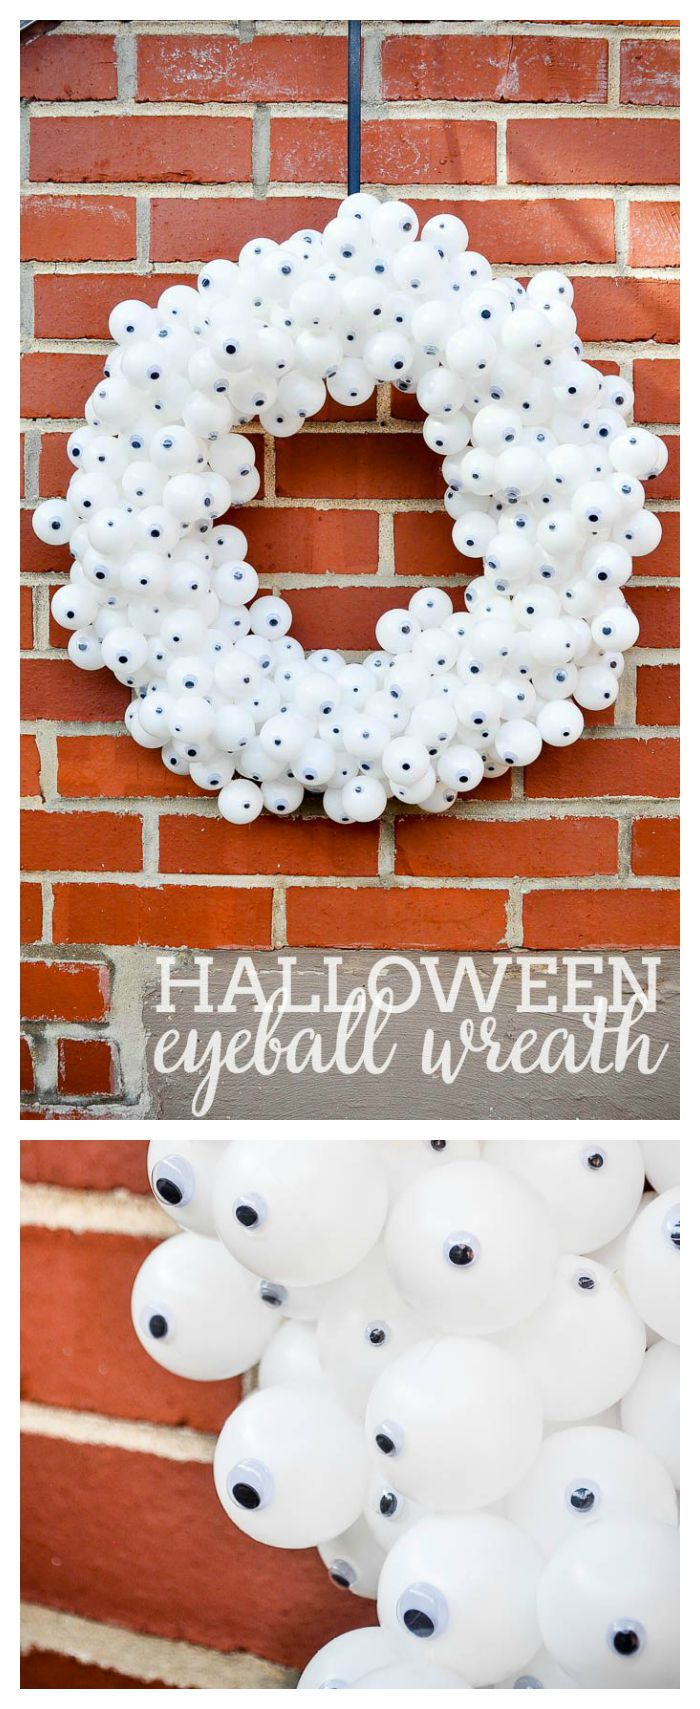 DIY Halloween Craft - This playful Eyeball Wreath is perfect holiday decor. Only taking a few materials to create this fun Halloween wreath. | The Love Nerds